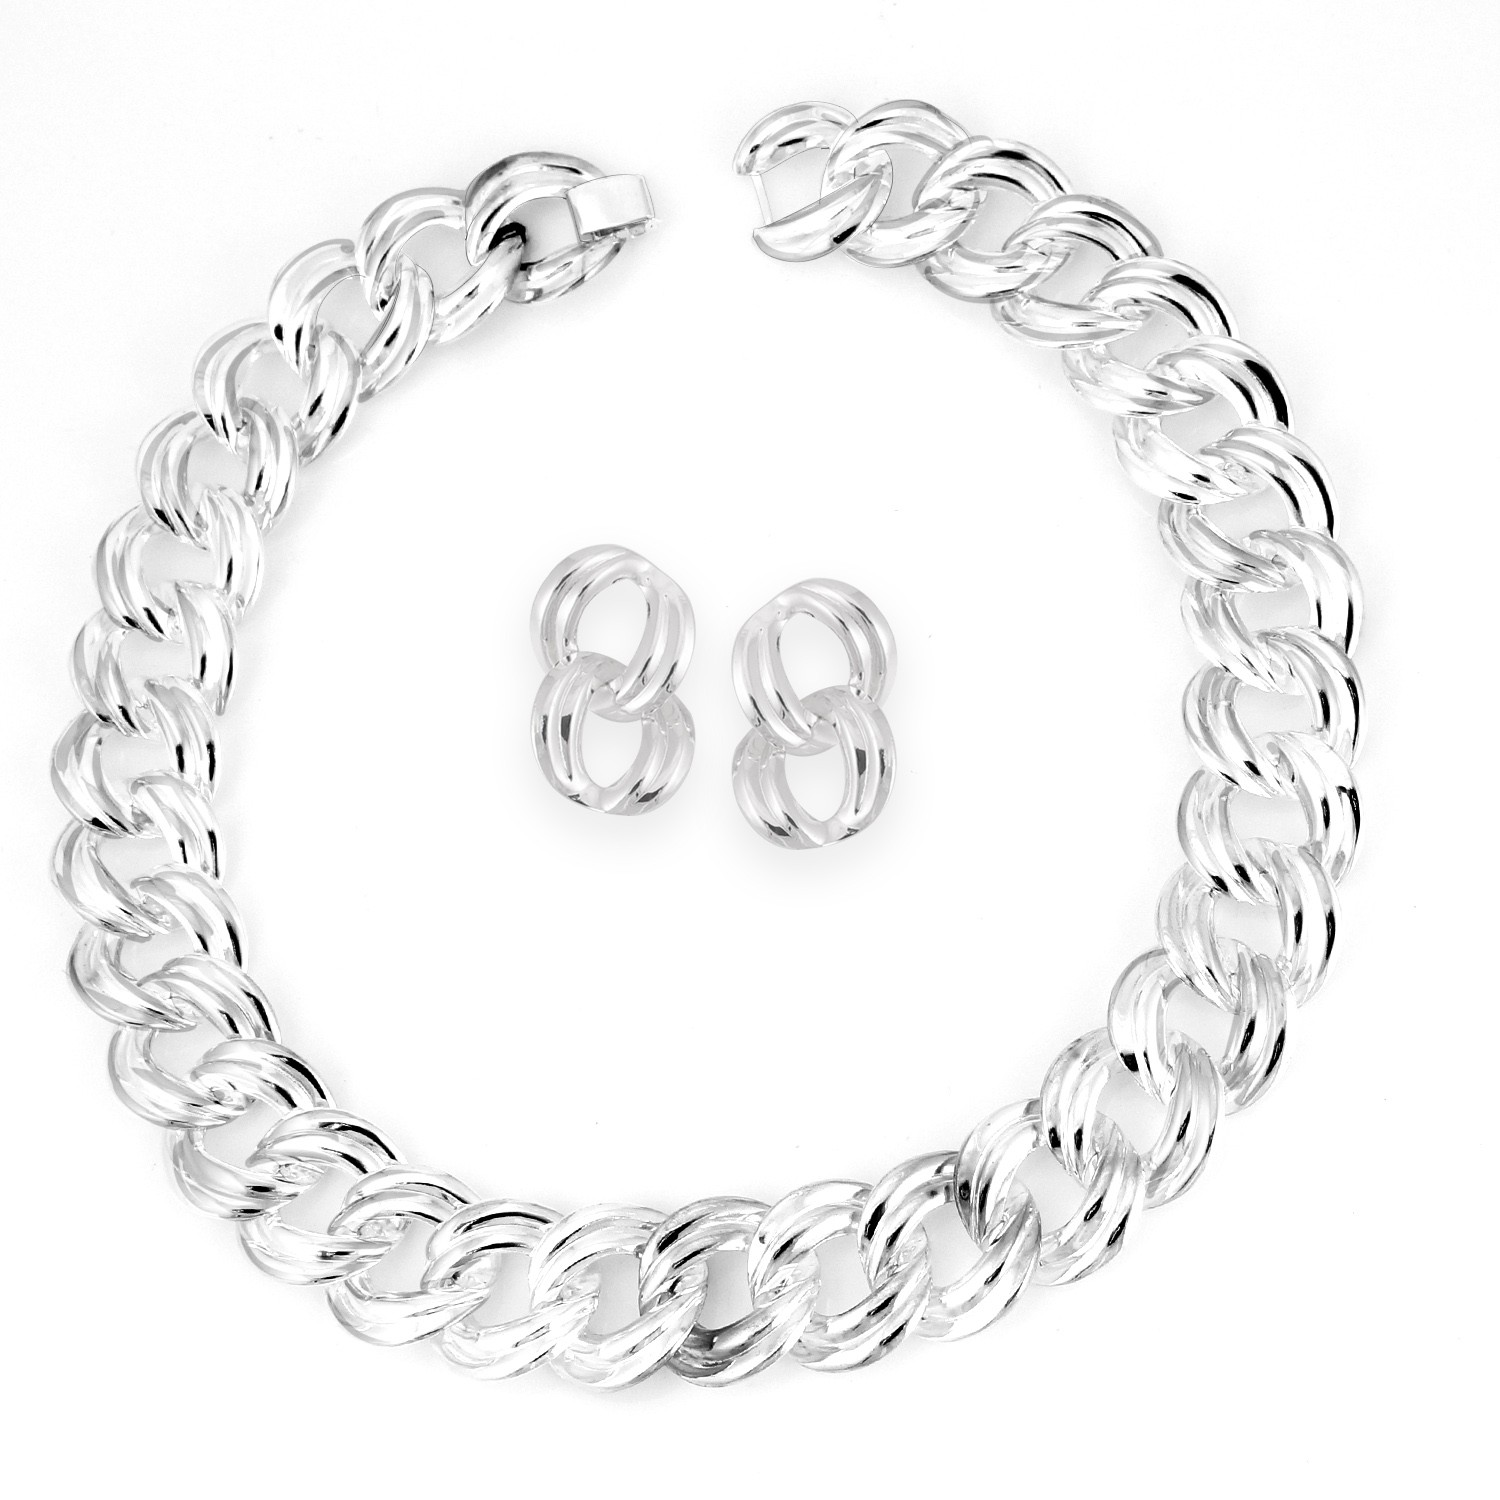 TAZZA WOMEN'S SILVER METAL DOUBLE CIRCLE LINK EARRINGS AND STATEMENT NECKLACES